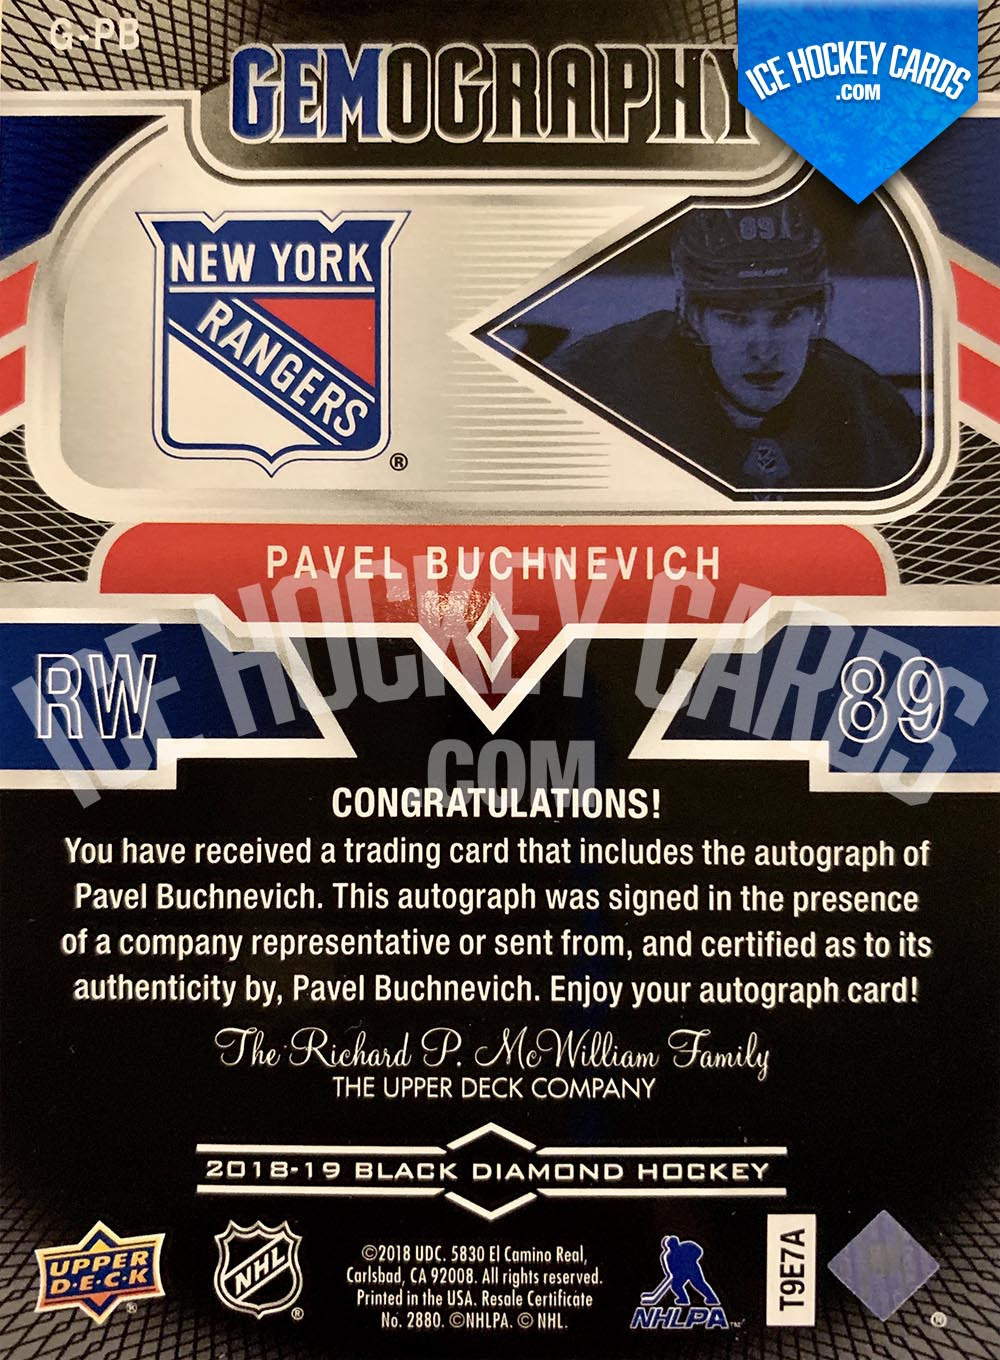 Upper Deck - Black Diamond 2018-19 - Pavel Buchnevich Gemography Autograph back